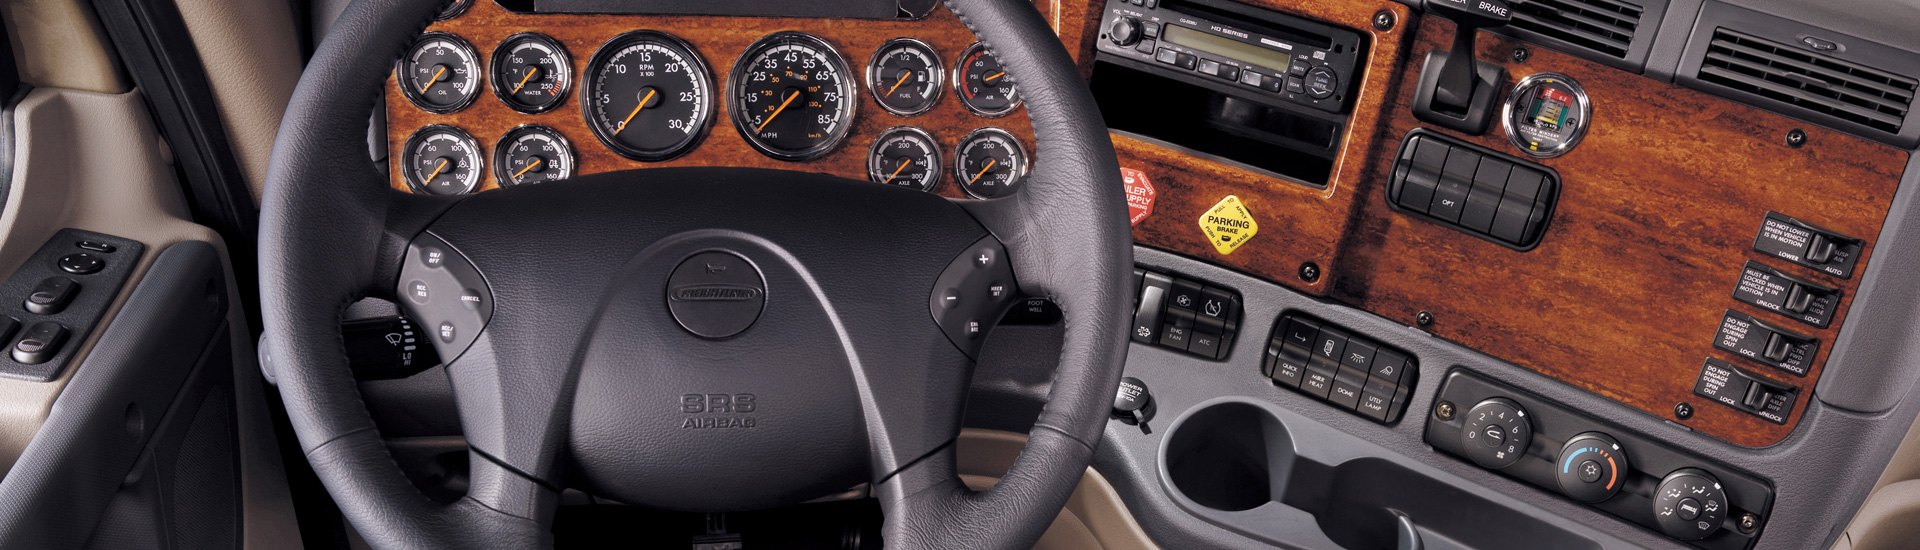 Workhorse Semi Truck Interior Accessories